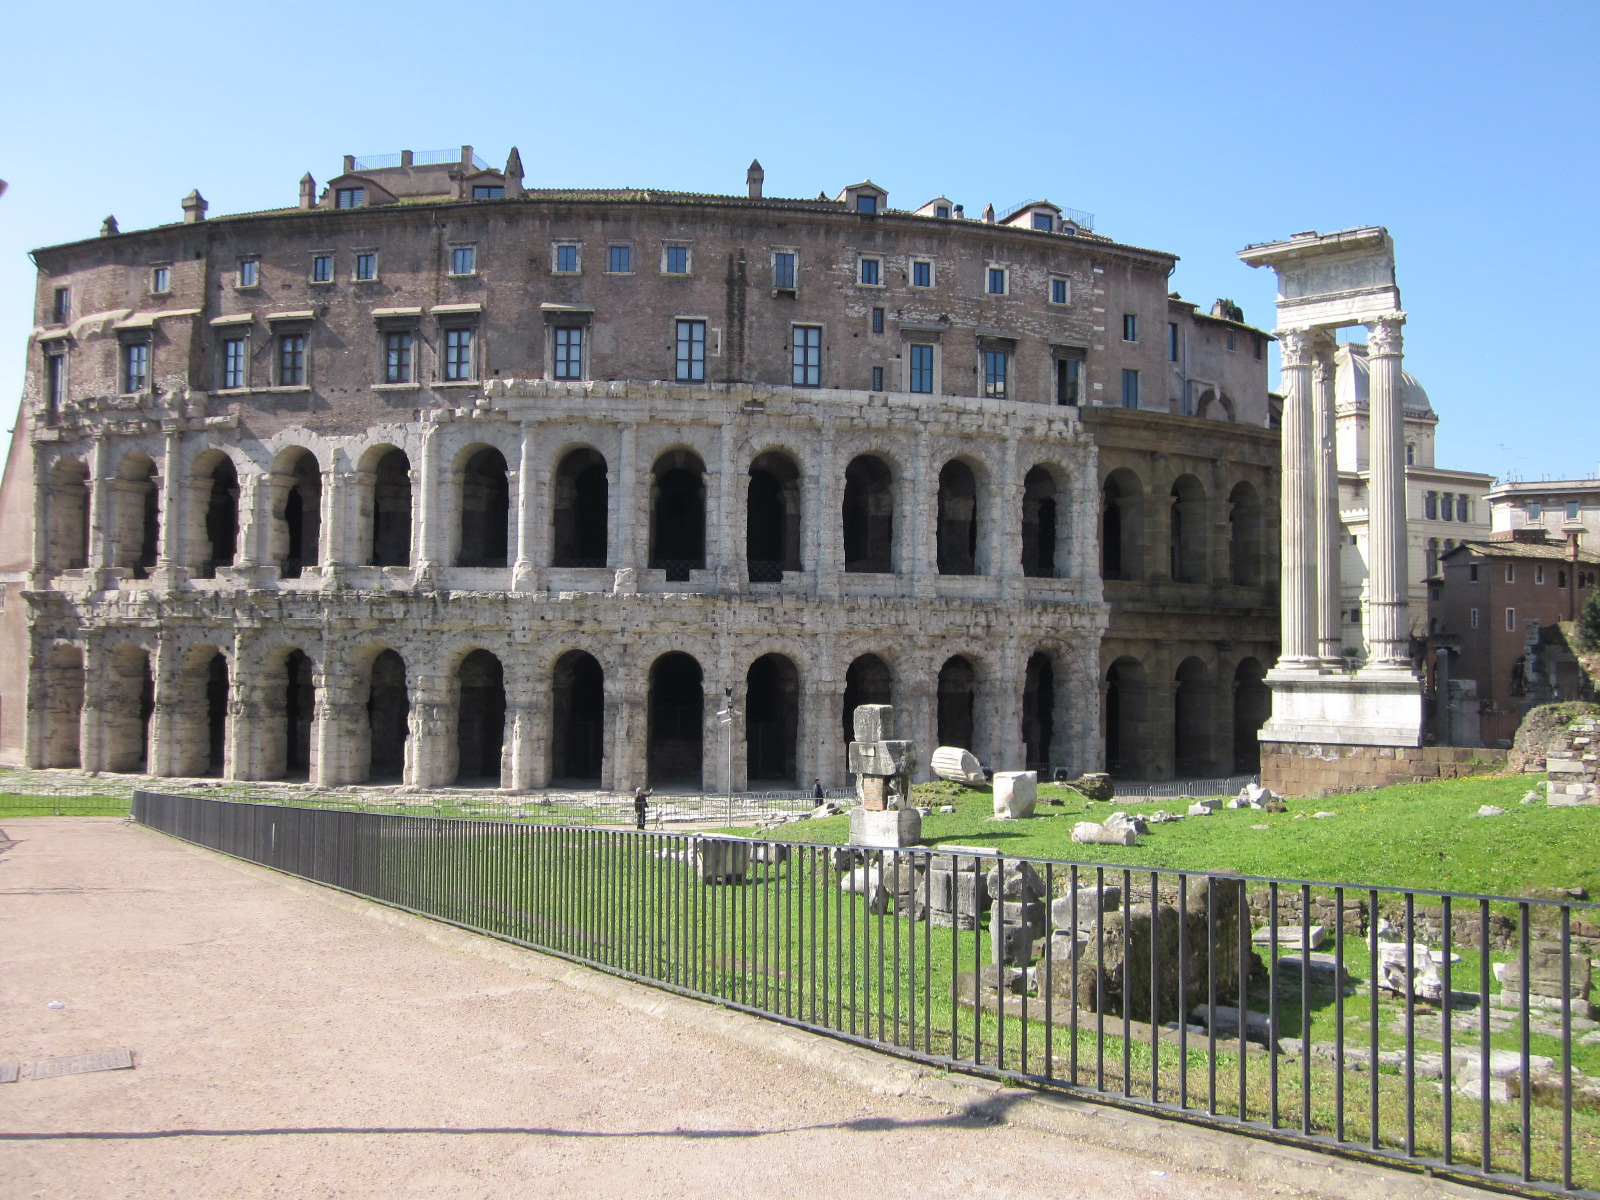 Sights of Rome: The Theater of Marcellus